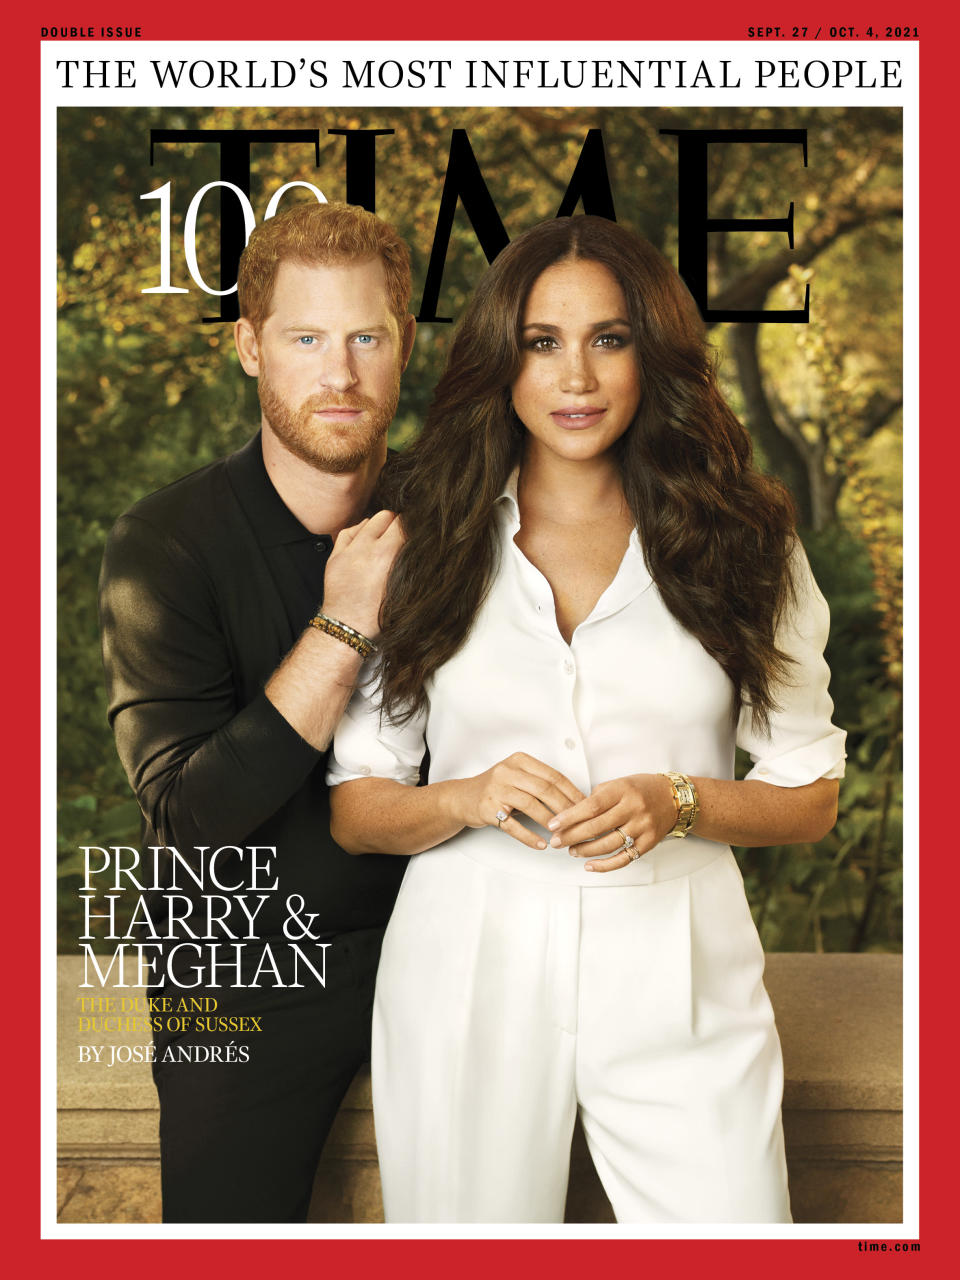 Prince Harry and Meghan Markle are on one of seven covers for the publication's 100 most influential people list. - Credit: Courtesy of Time